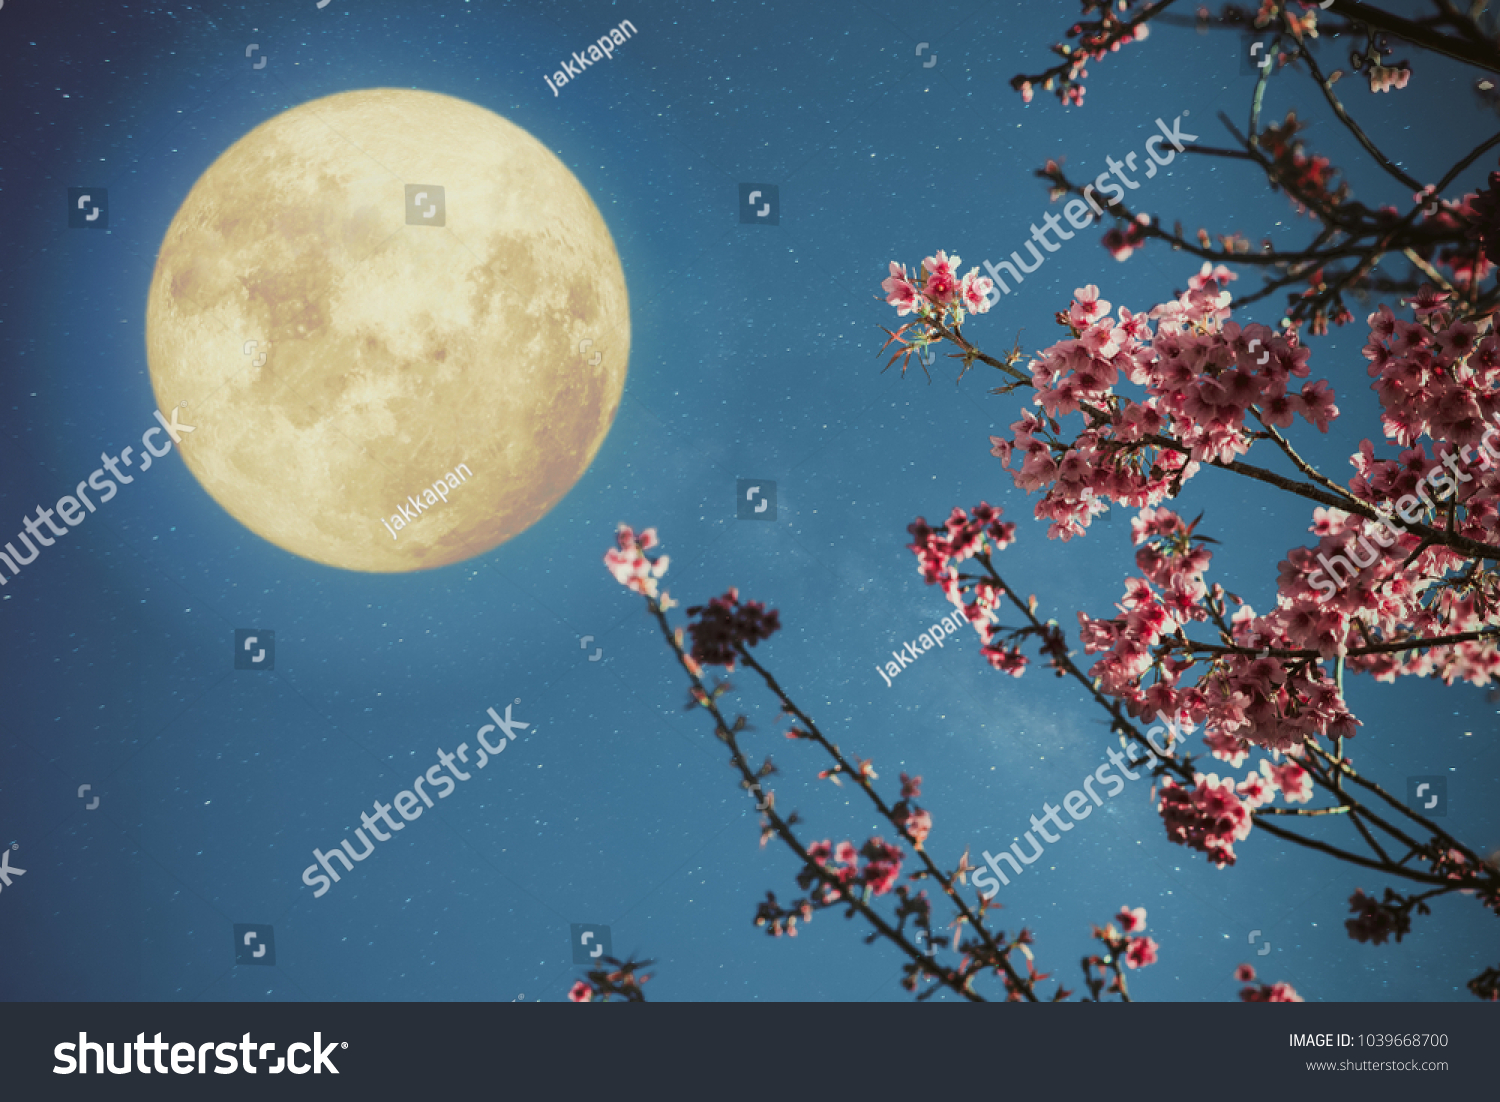 Romantic night scene beautiful cherry blossom stock photo safe to romantic night scene beautiful cherry blossom sakura flowers in night skies with full izmirmasajfo